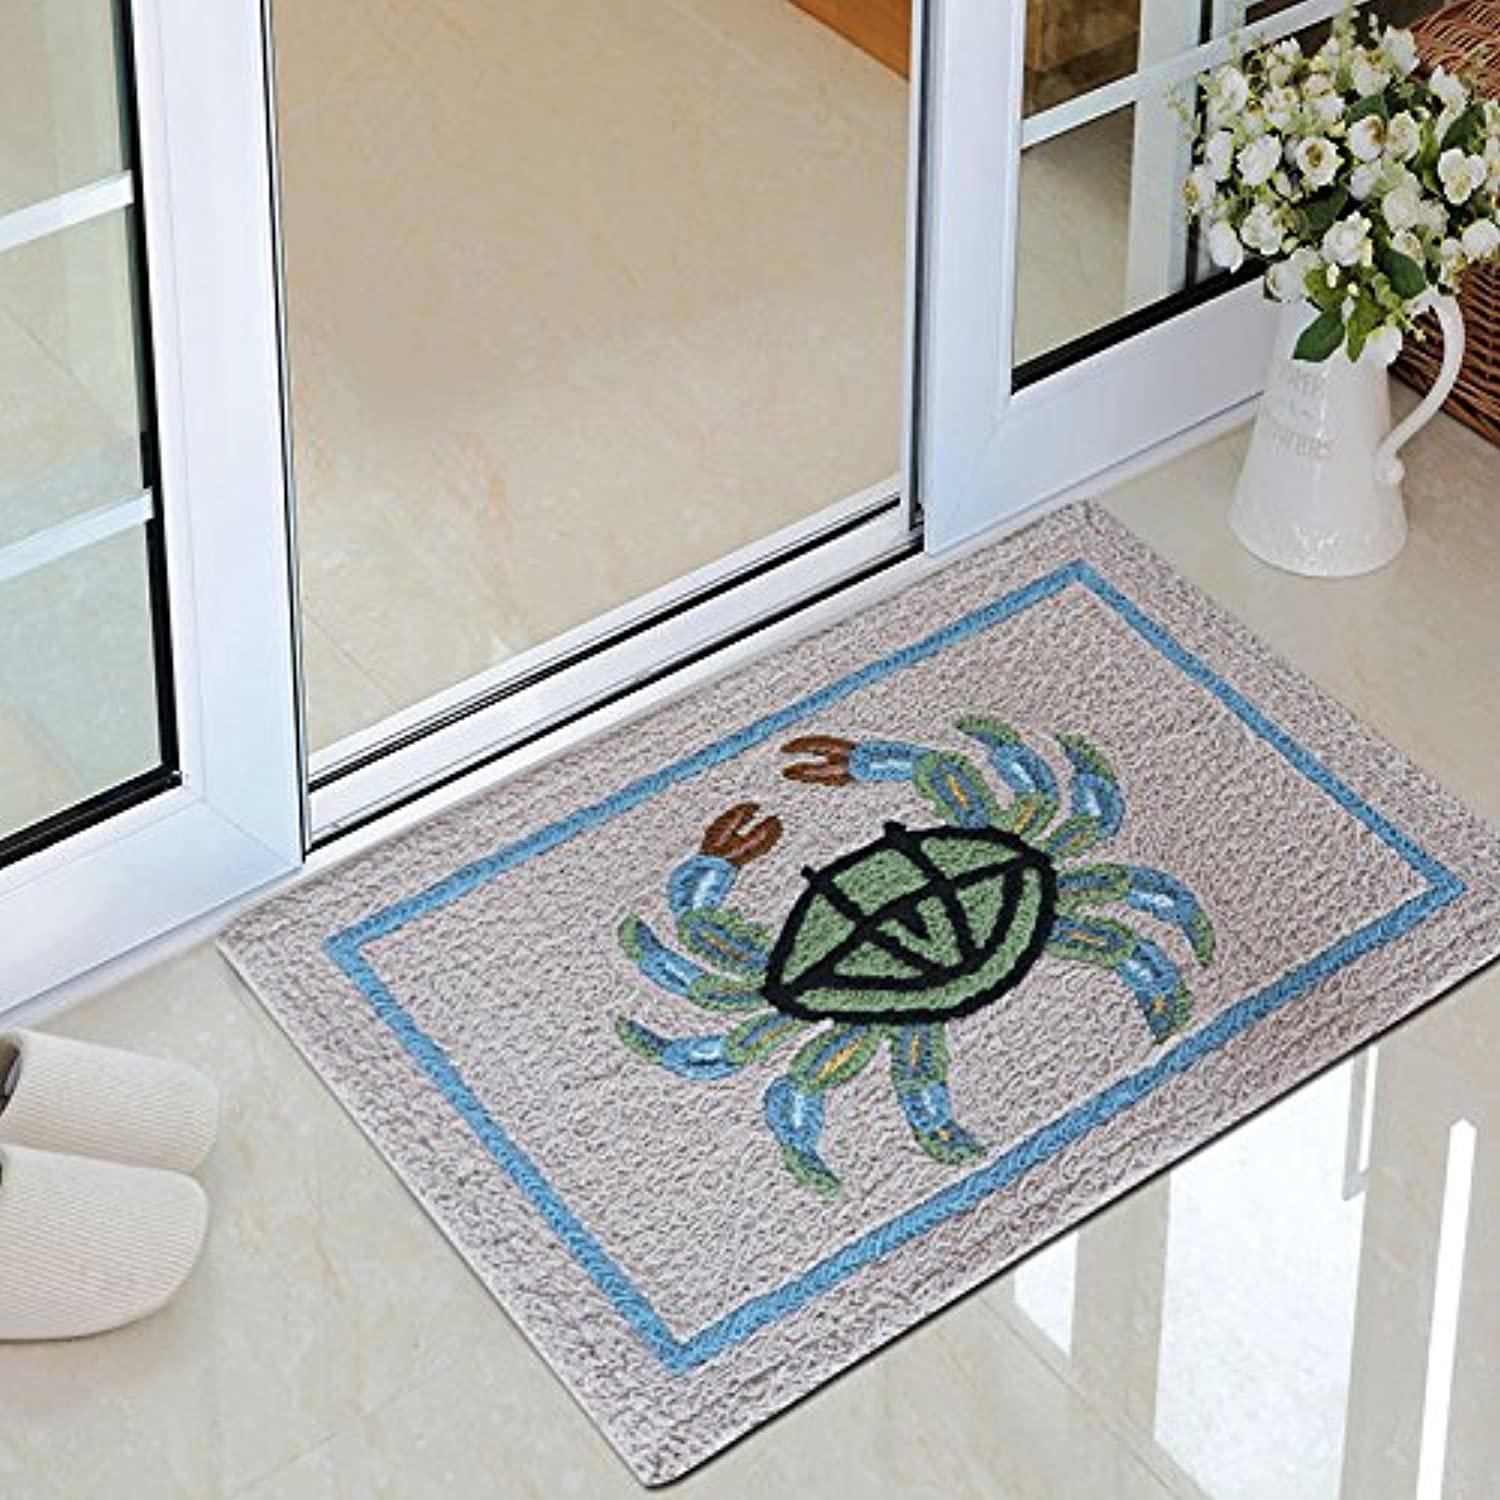 Cartoon Strip Pattern Entrance Door mat, Simple and Fashionable Doormat Bedroom Household Absorbent pad Bathroom Household dust removal-M-50x80cm(20x31inch)